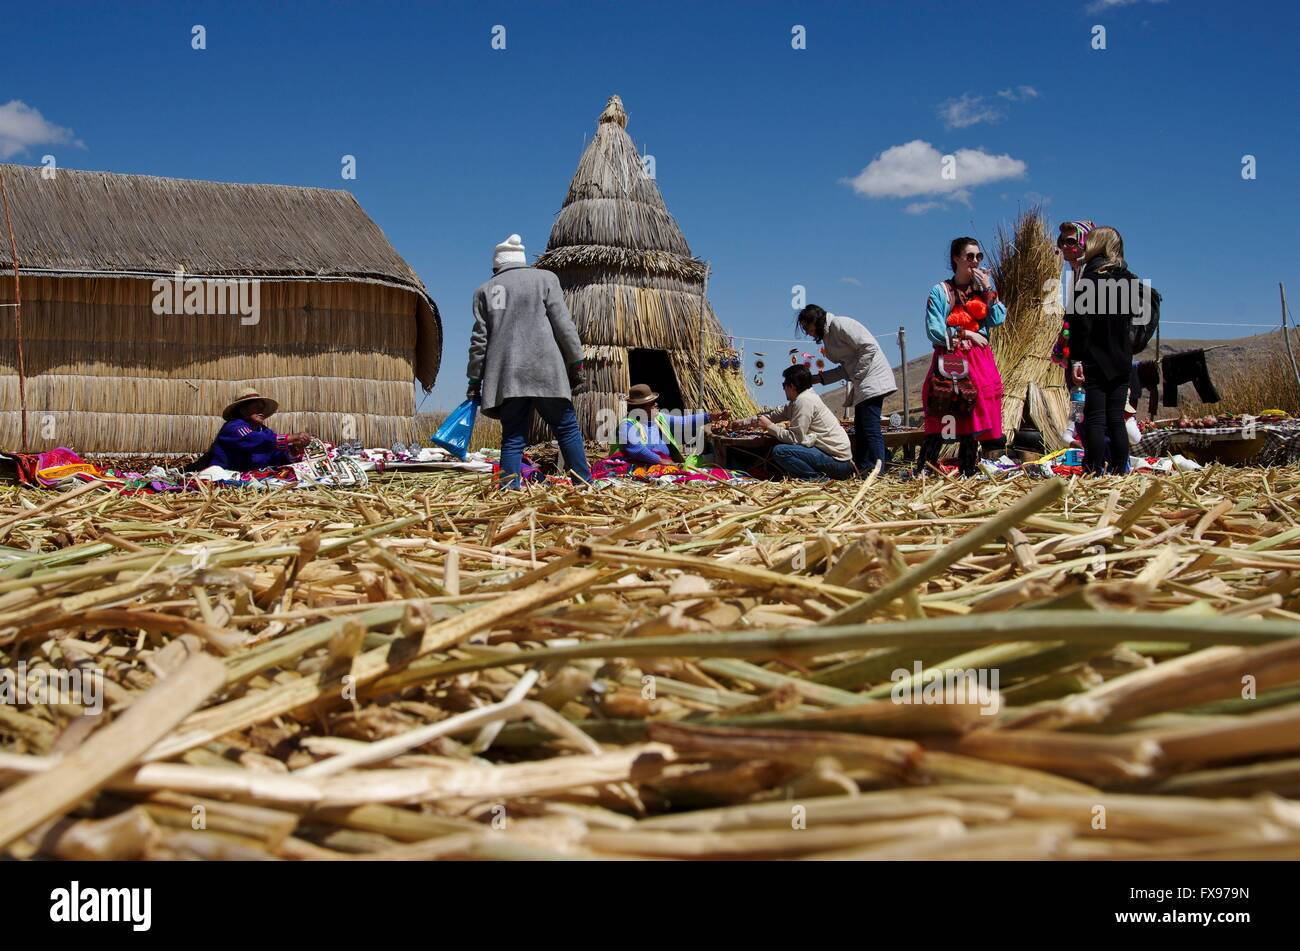 Women of the Uros people selling souveniers on their reed island in Lake Titicaca to tourists. Picture taken 2015 - Stock Image